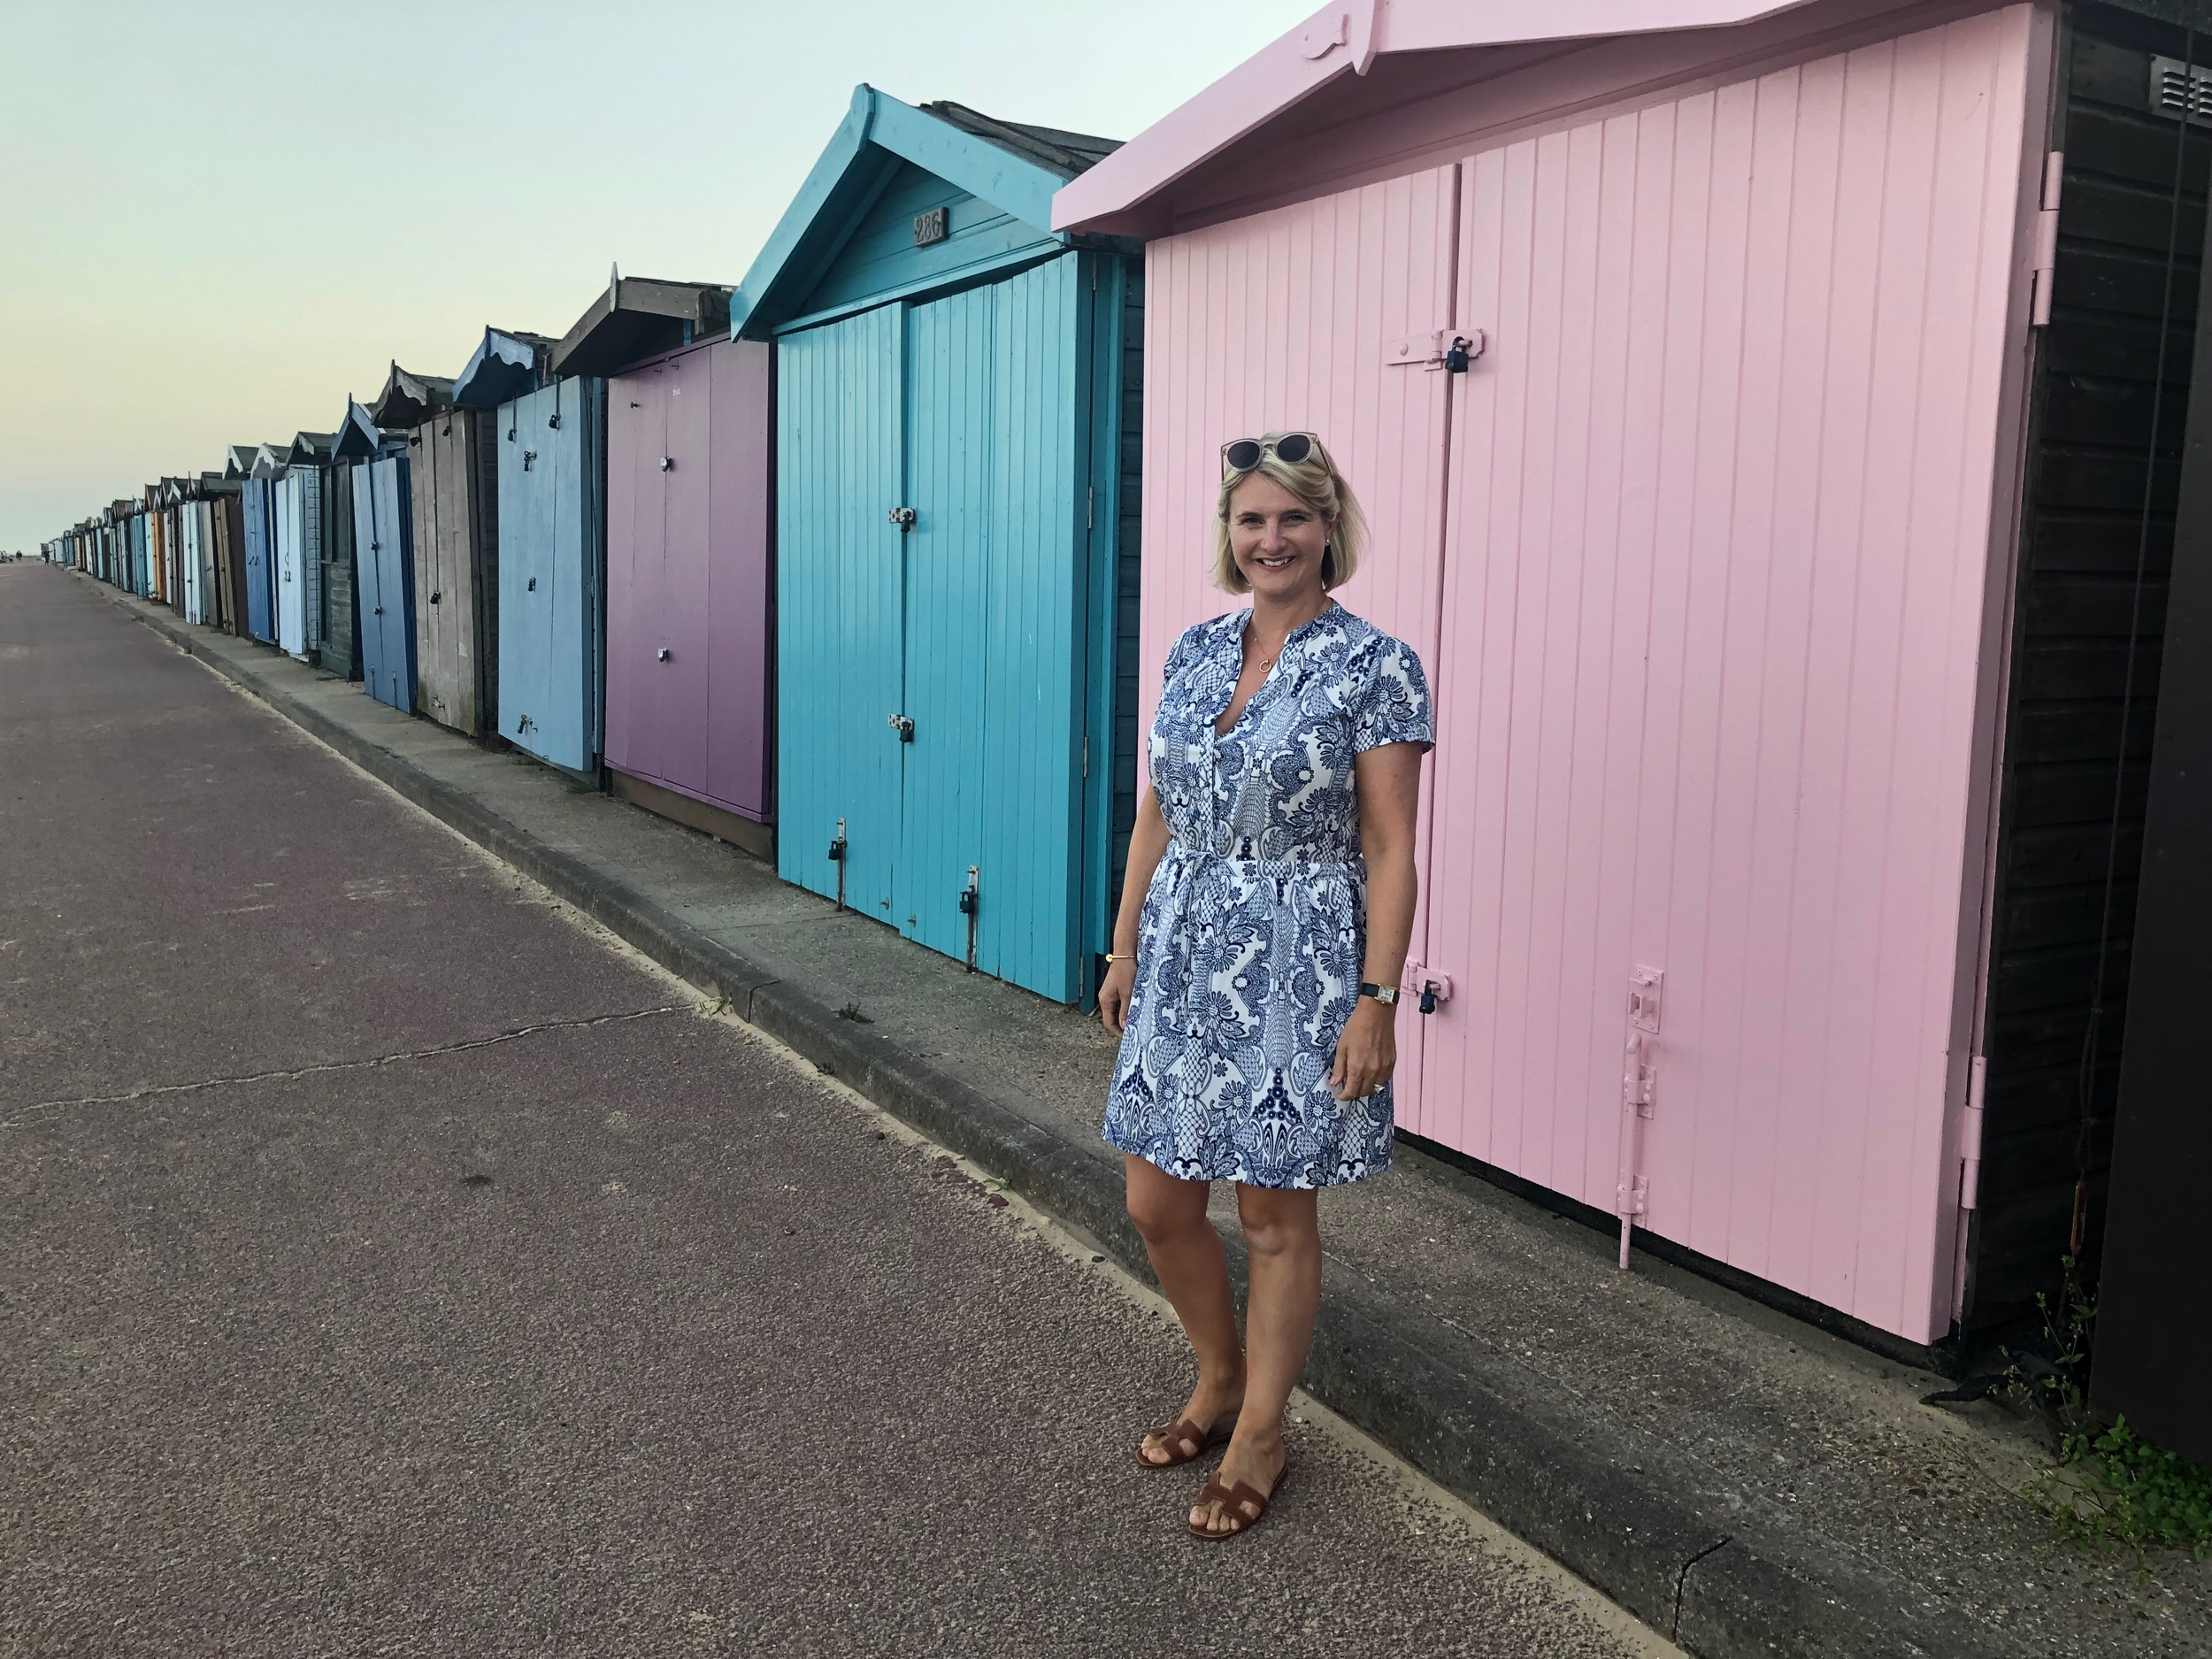 We had a lovely, albeit slow walk along the beach and then once there was no more beach we walked along the promenade next to the glorious beach huts.  The day after I wore this dress I saw one very similar on my Insta.  Ok, I appreciate the one below isn't an identical match, but it's close enough, and bearing in mind the Wolf & Badger one is £200 and my one was £12, I think I'm ok with it not being an exact match.